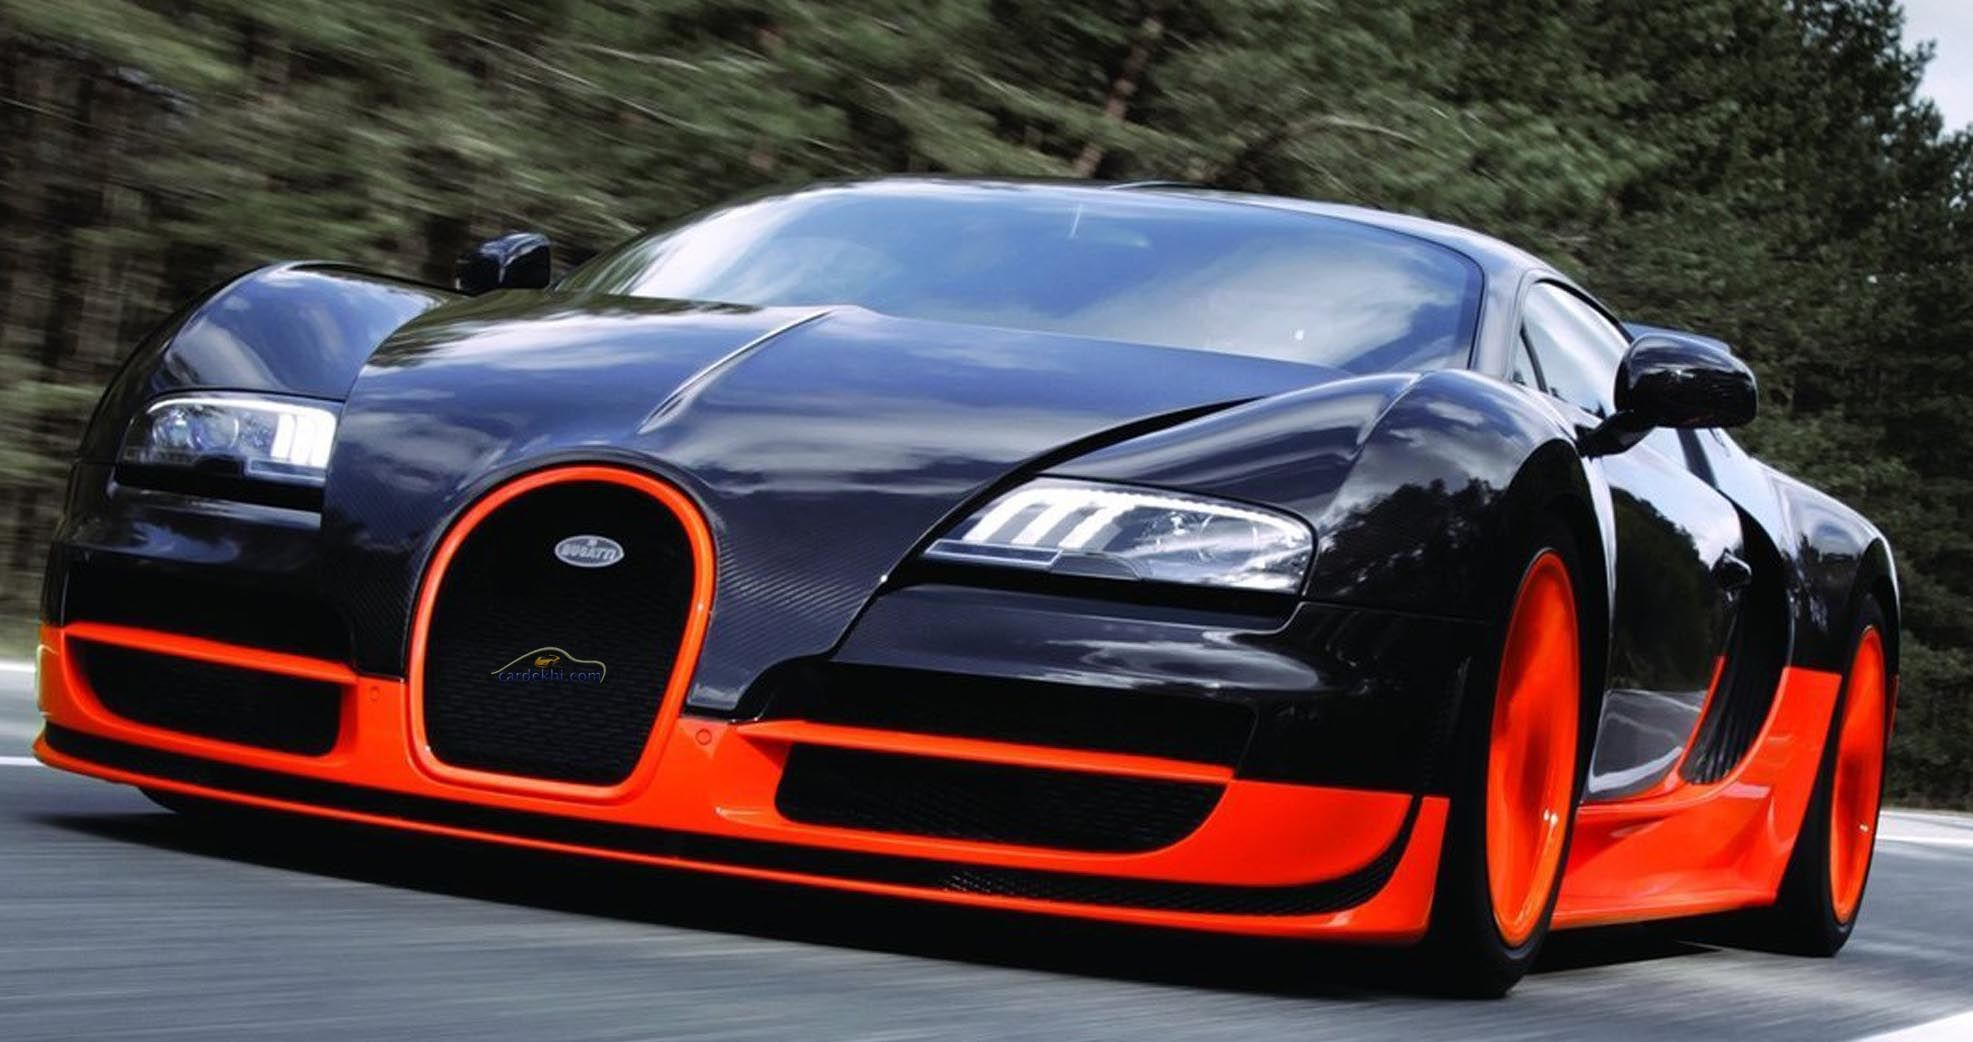 coolest car in the - Top 10 Fast Cars In The World 2012